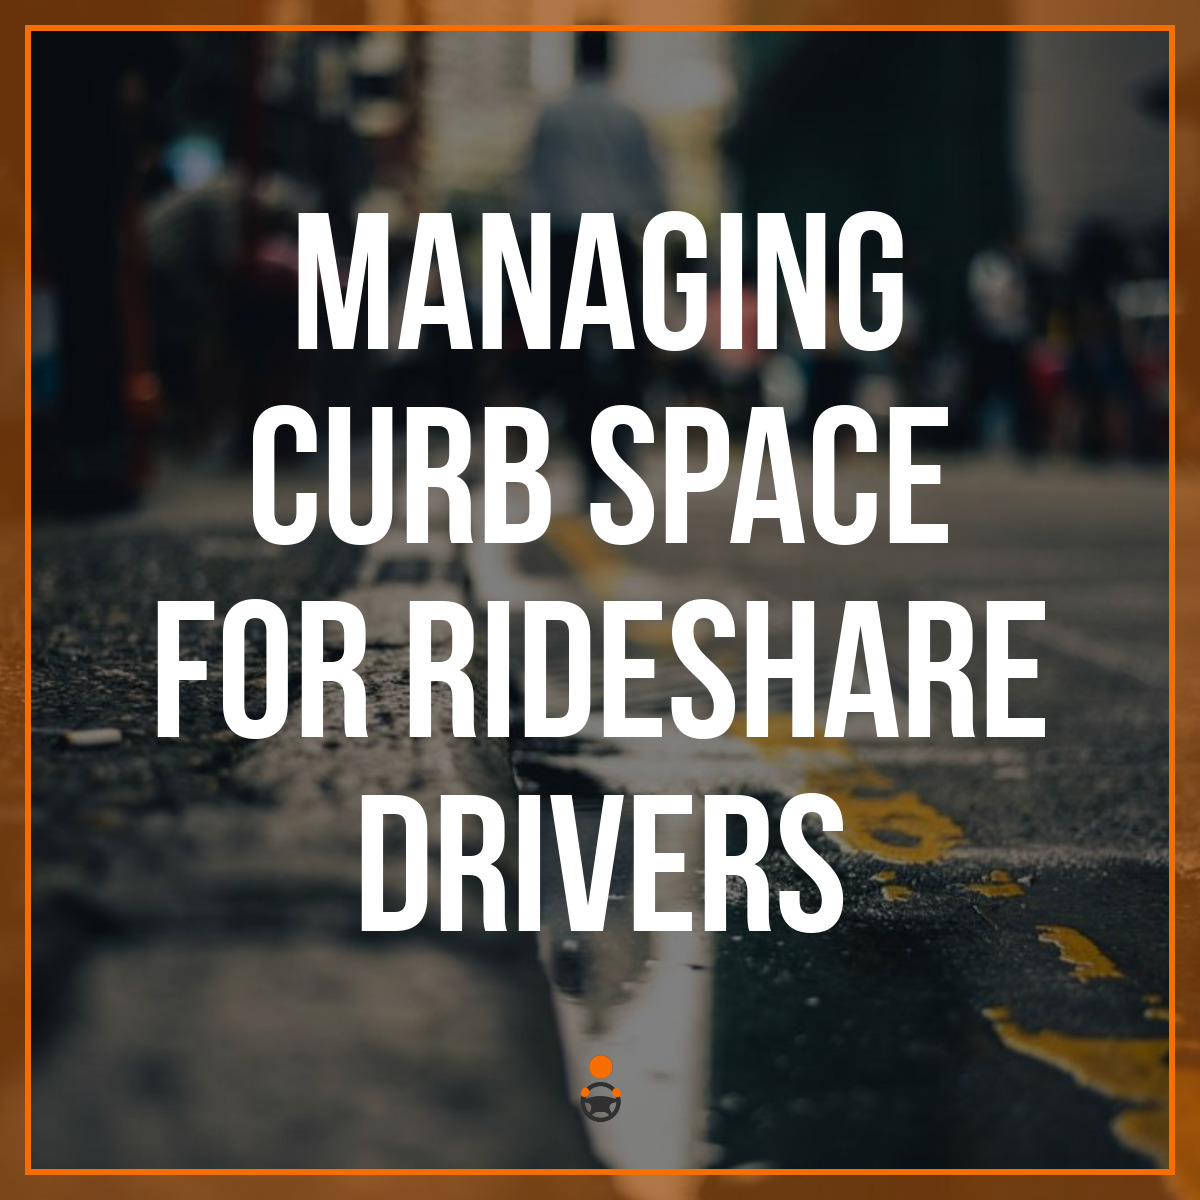 Managing Curb Space for Rideshare Drivers